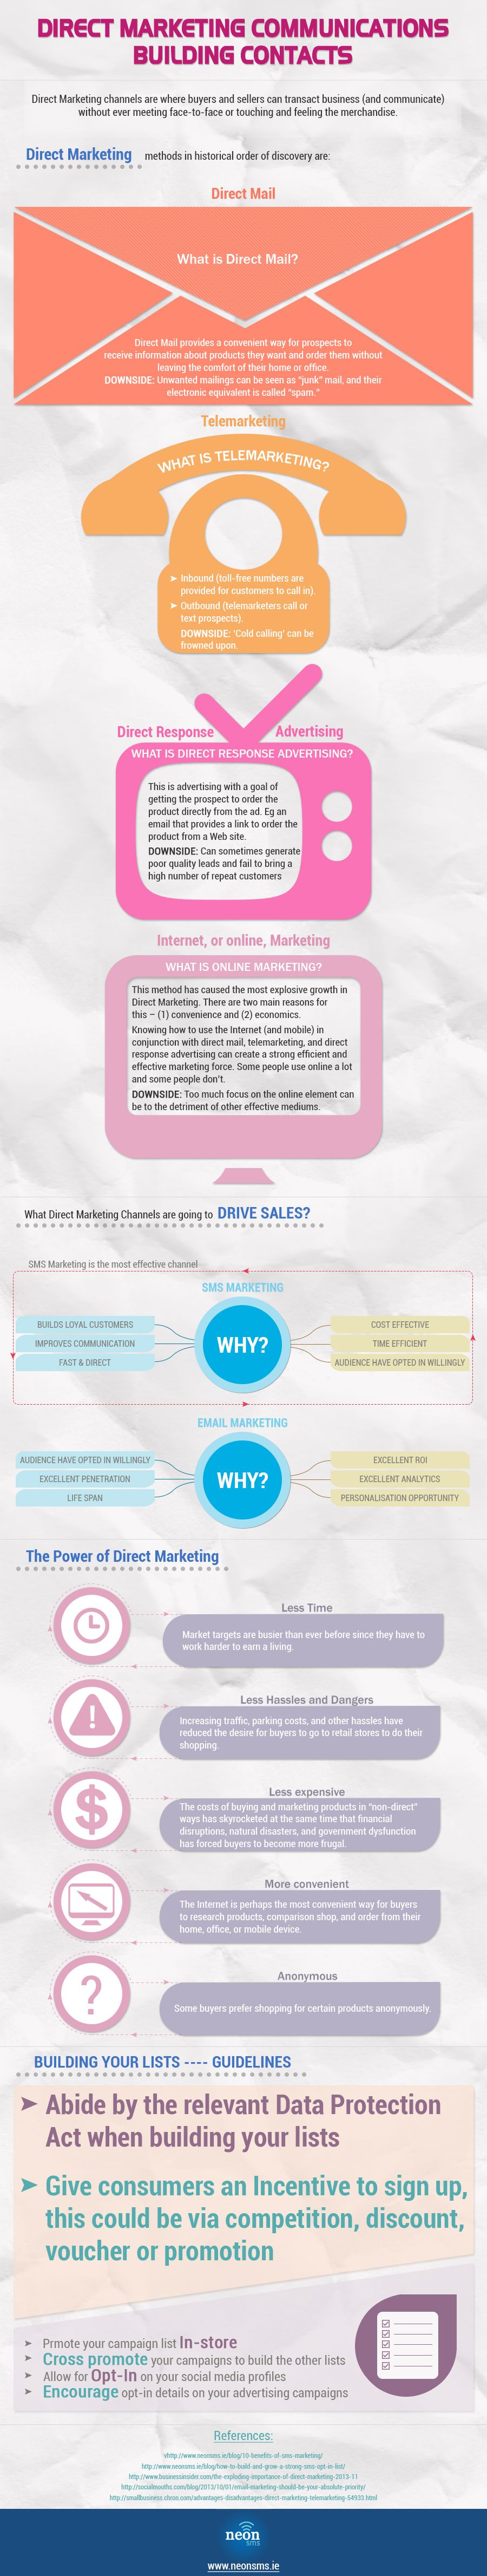 [Infograph] Direct Marketing Communications Building Contacts